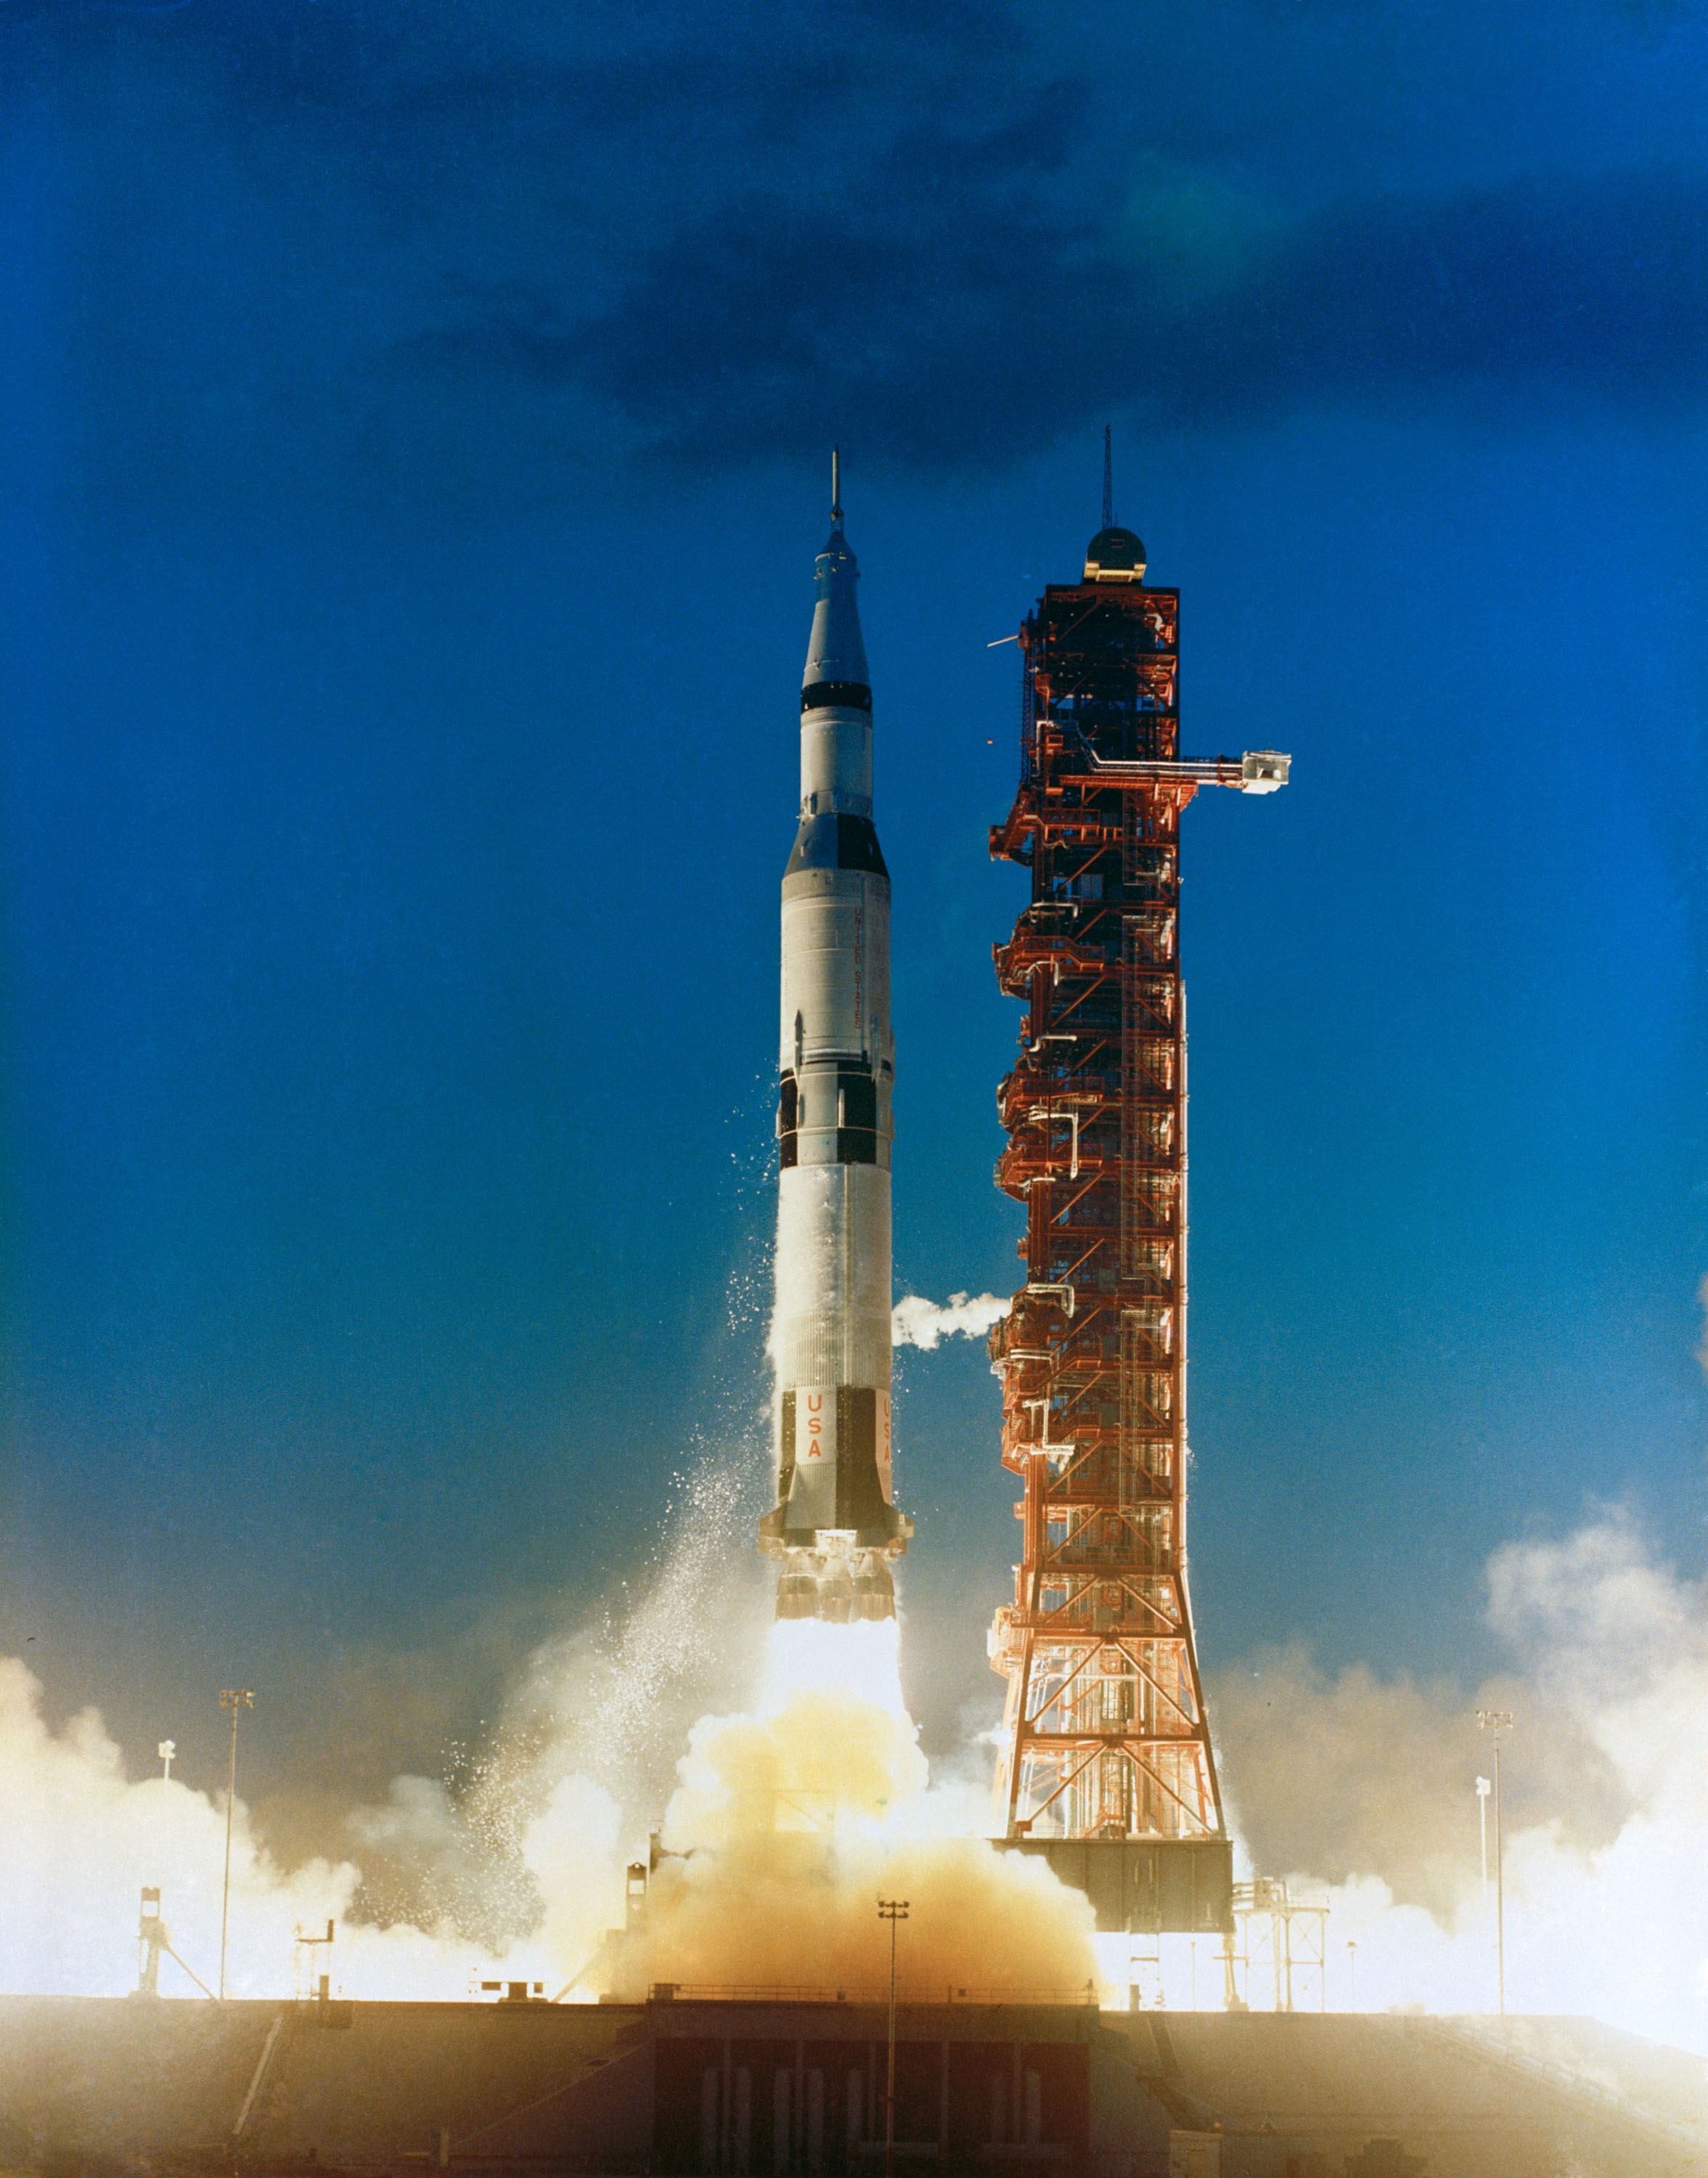 nasa apollo program historical information - photo #36